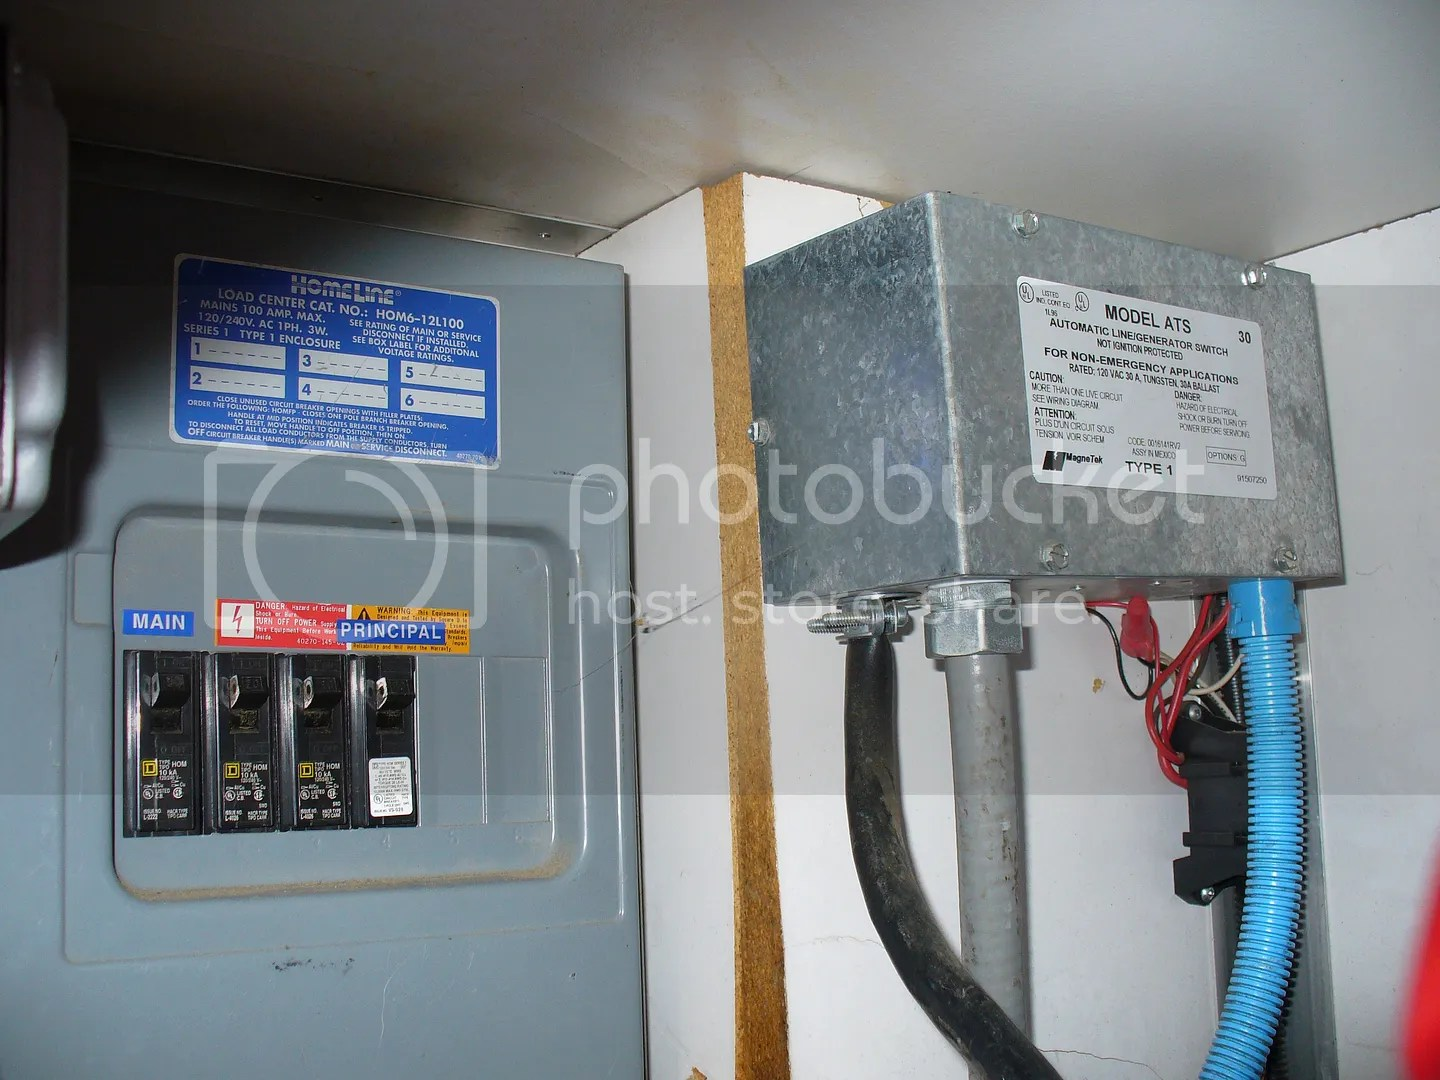 rv transfer switch wiring diagram what does a climate summarize help w/ electrical in enclosed trailer-diagram - trucks, trailers, rv's & toy haulers ...